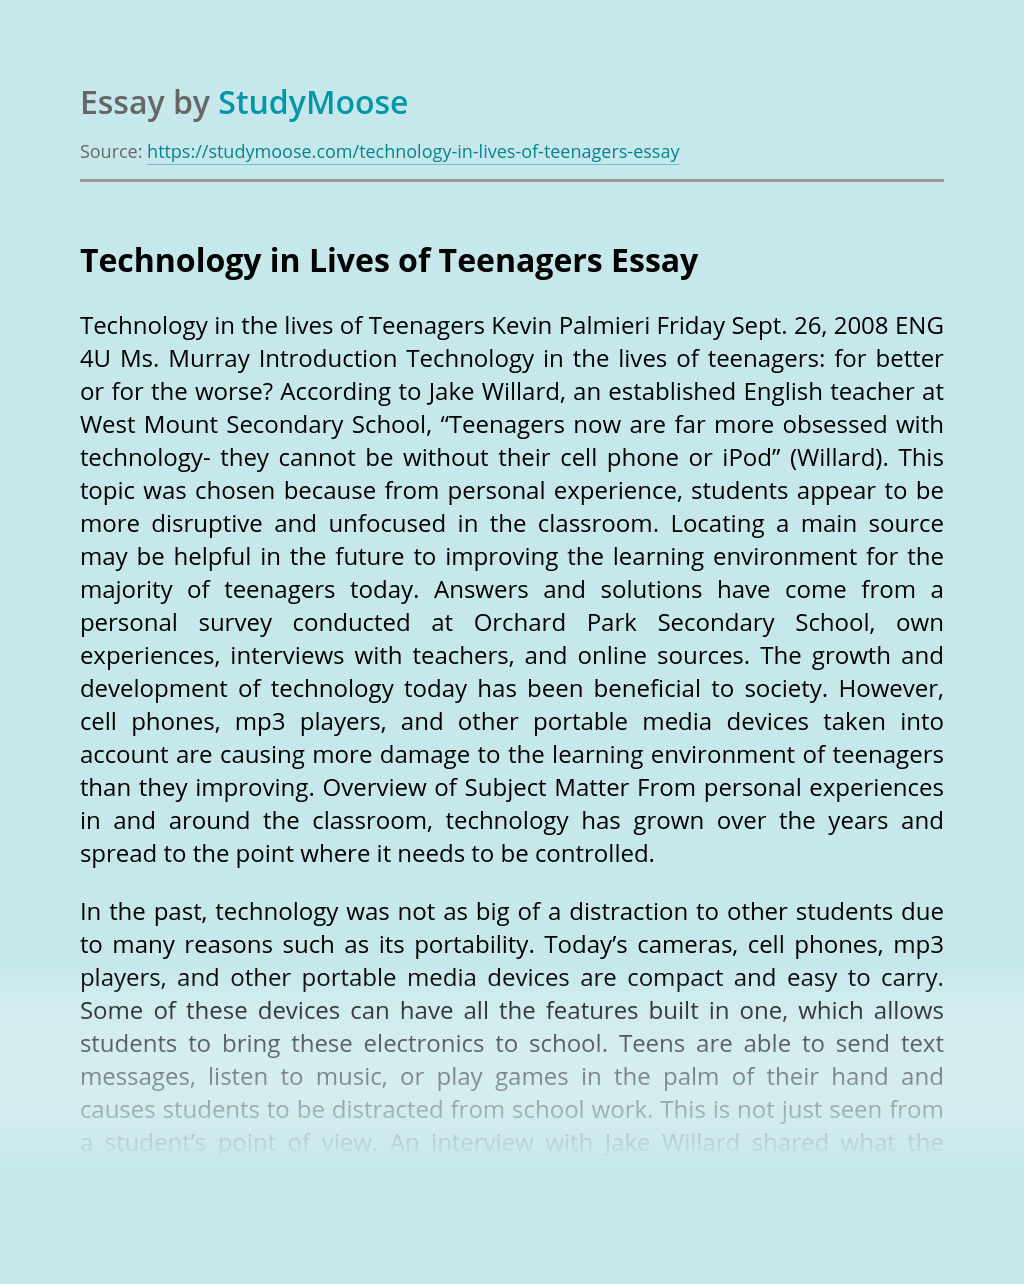 Technology in Lives of Teenagers